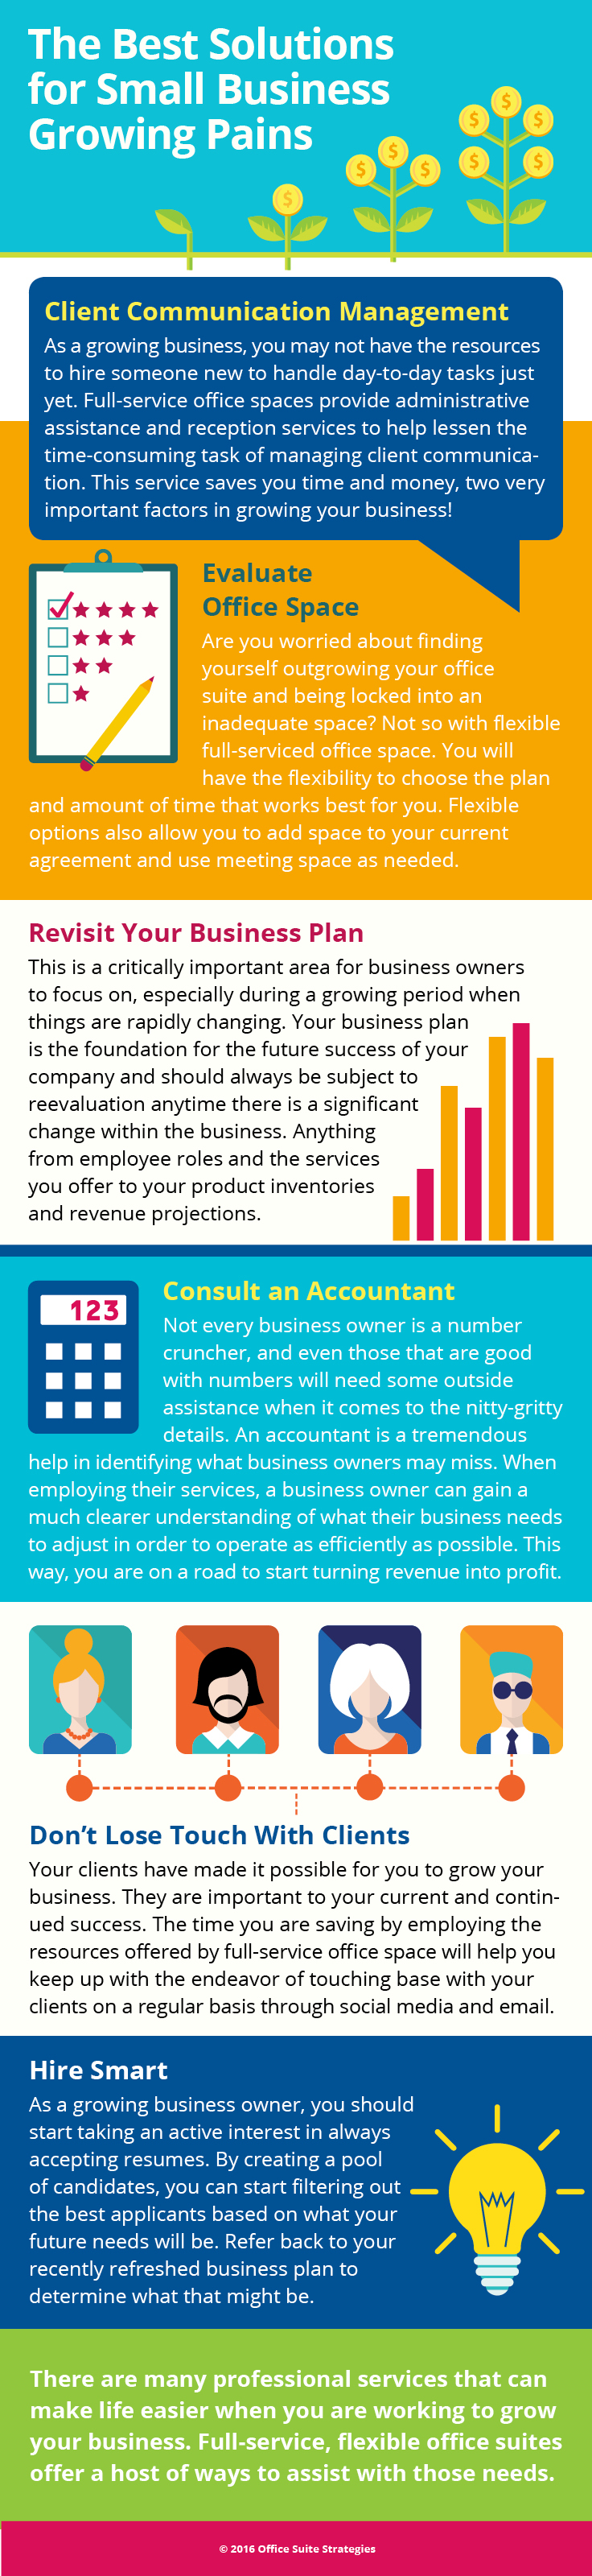 Infographic for Nashville, TN small business owners who are experiencing small business growing pains